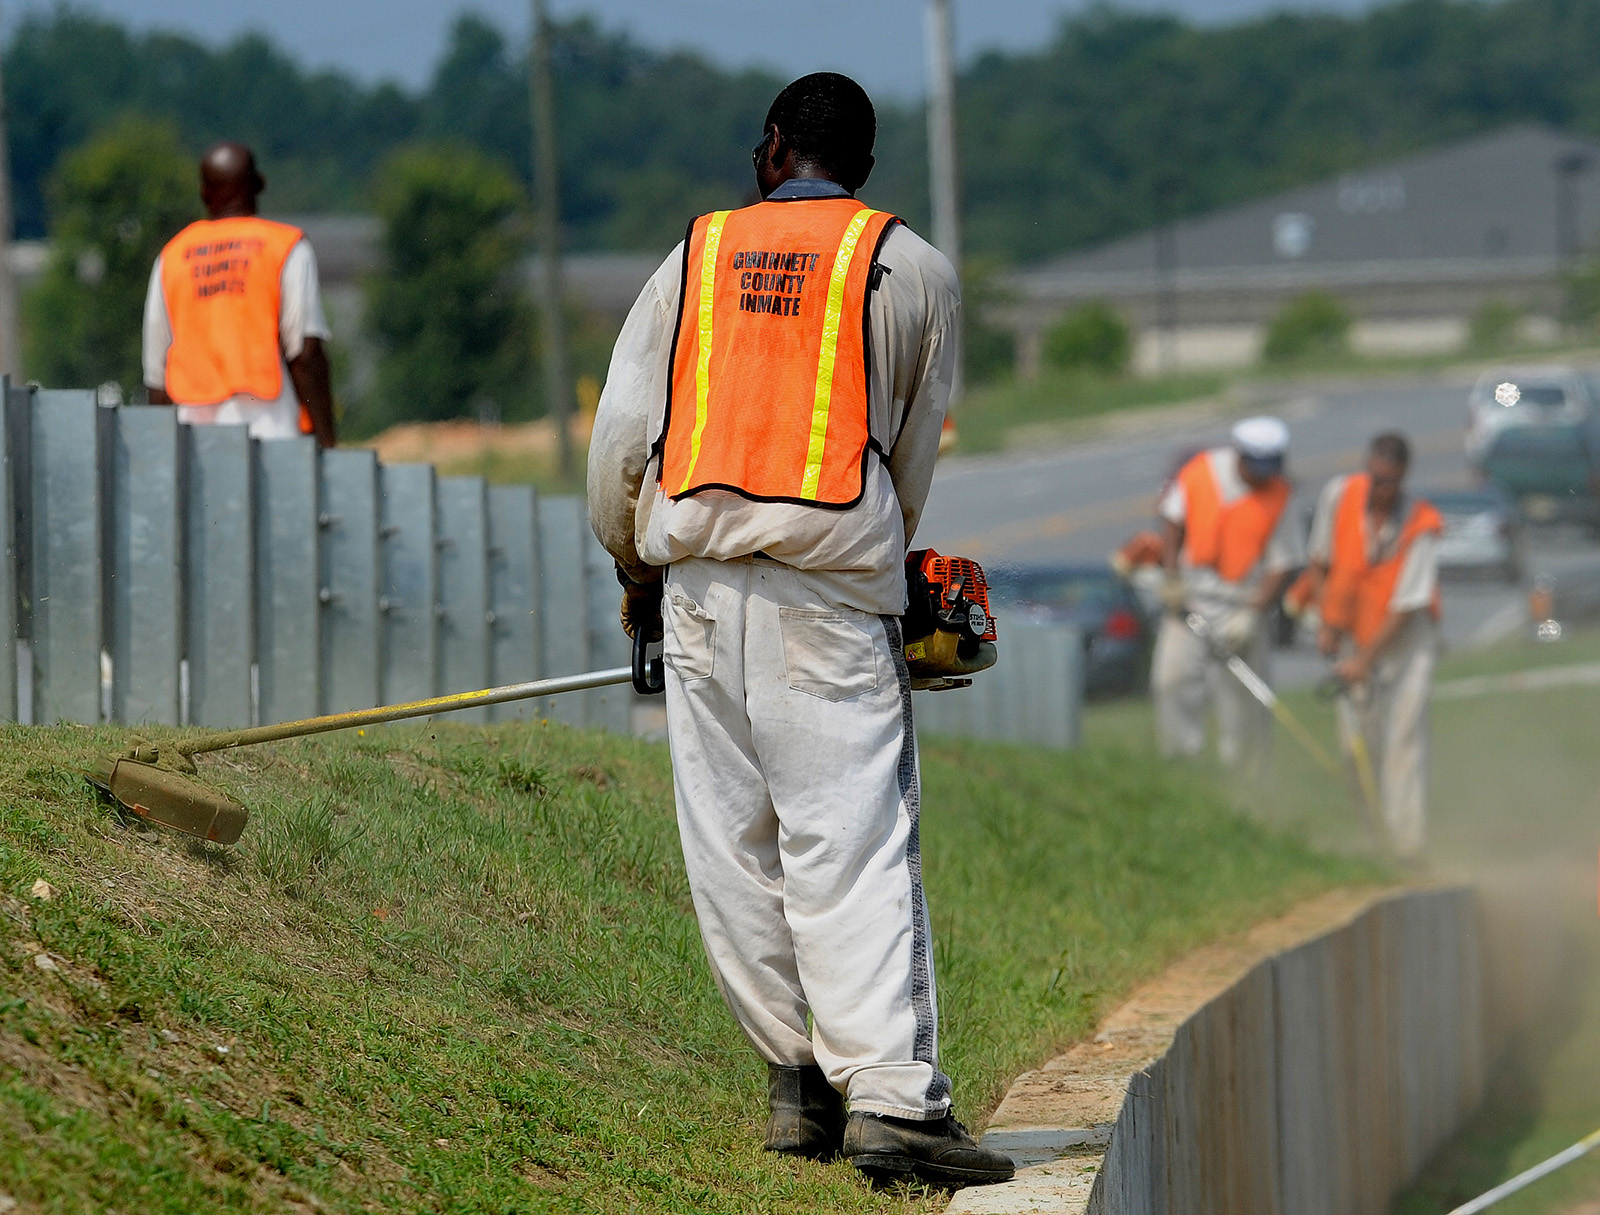 prison laborer working on the side of the road